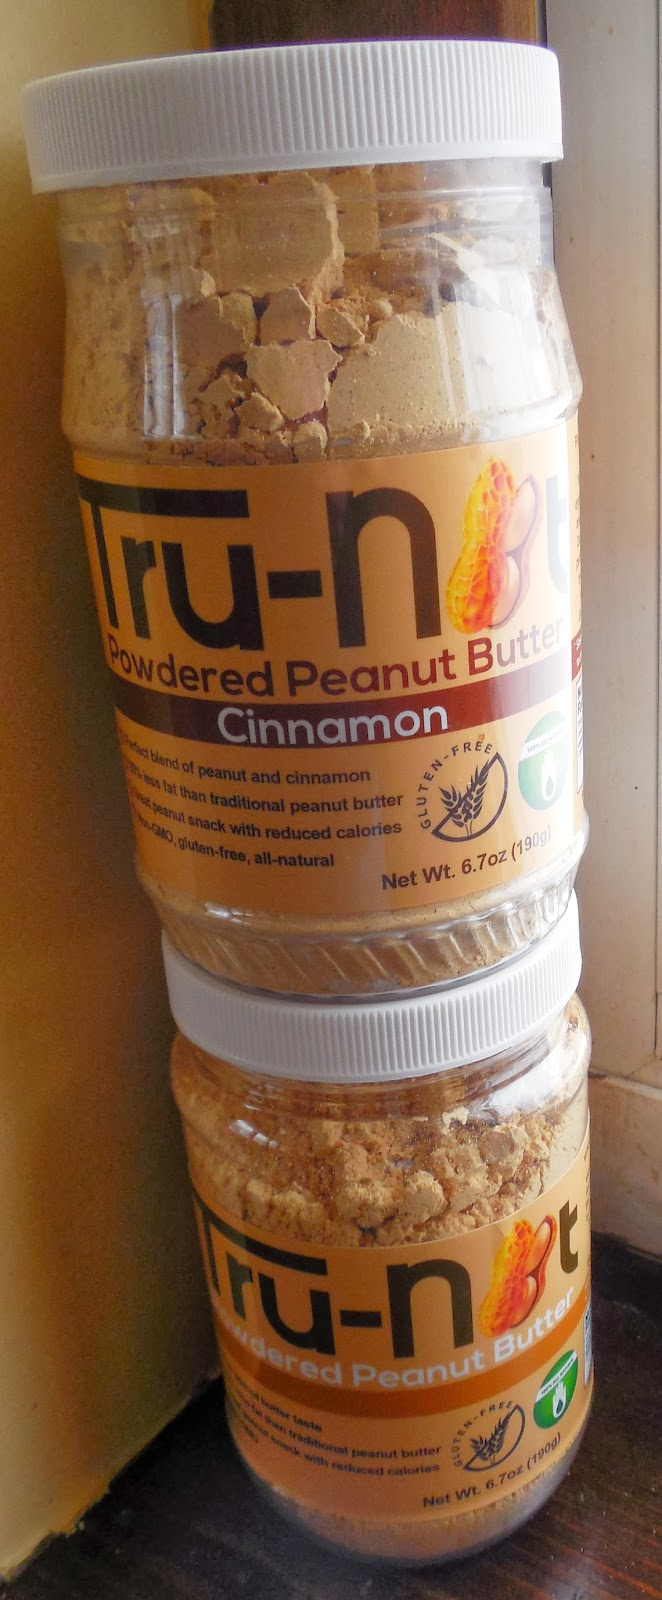 Tru-nut Powdered Peanut Butter